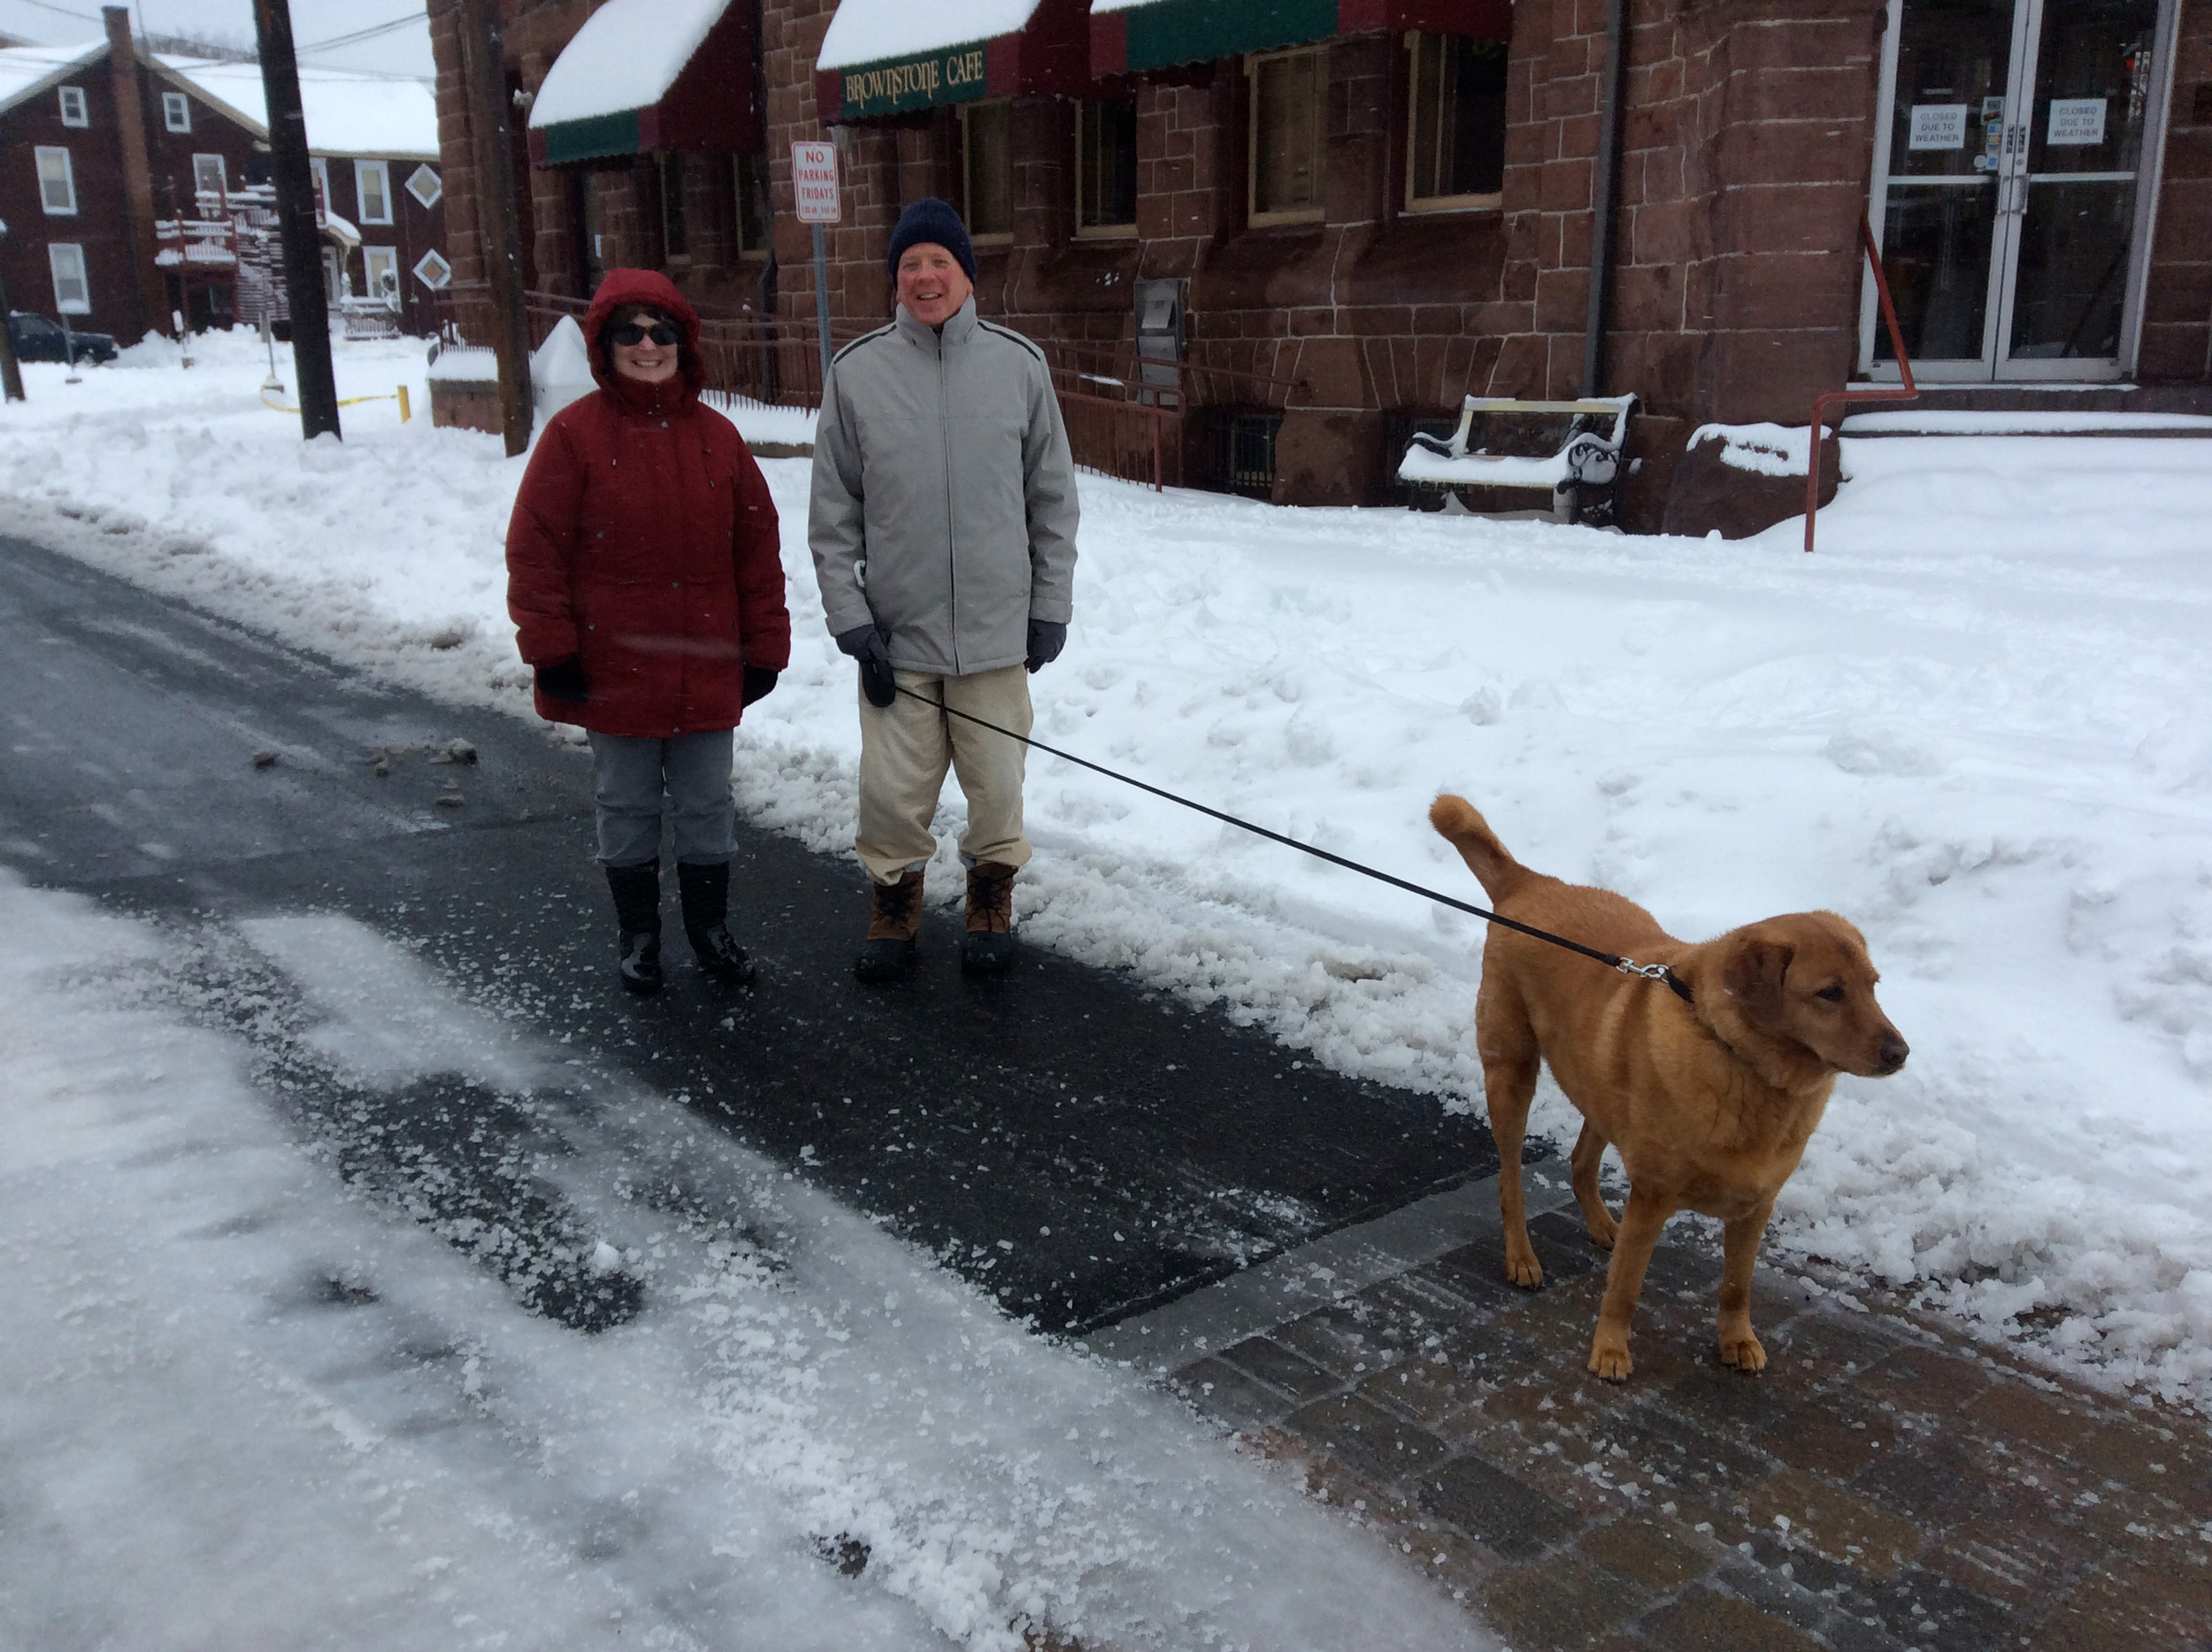 Karen and David Judy brave the snow after roads were started to be cleared Tuesday.